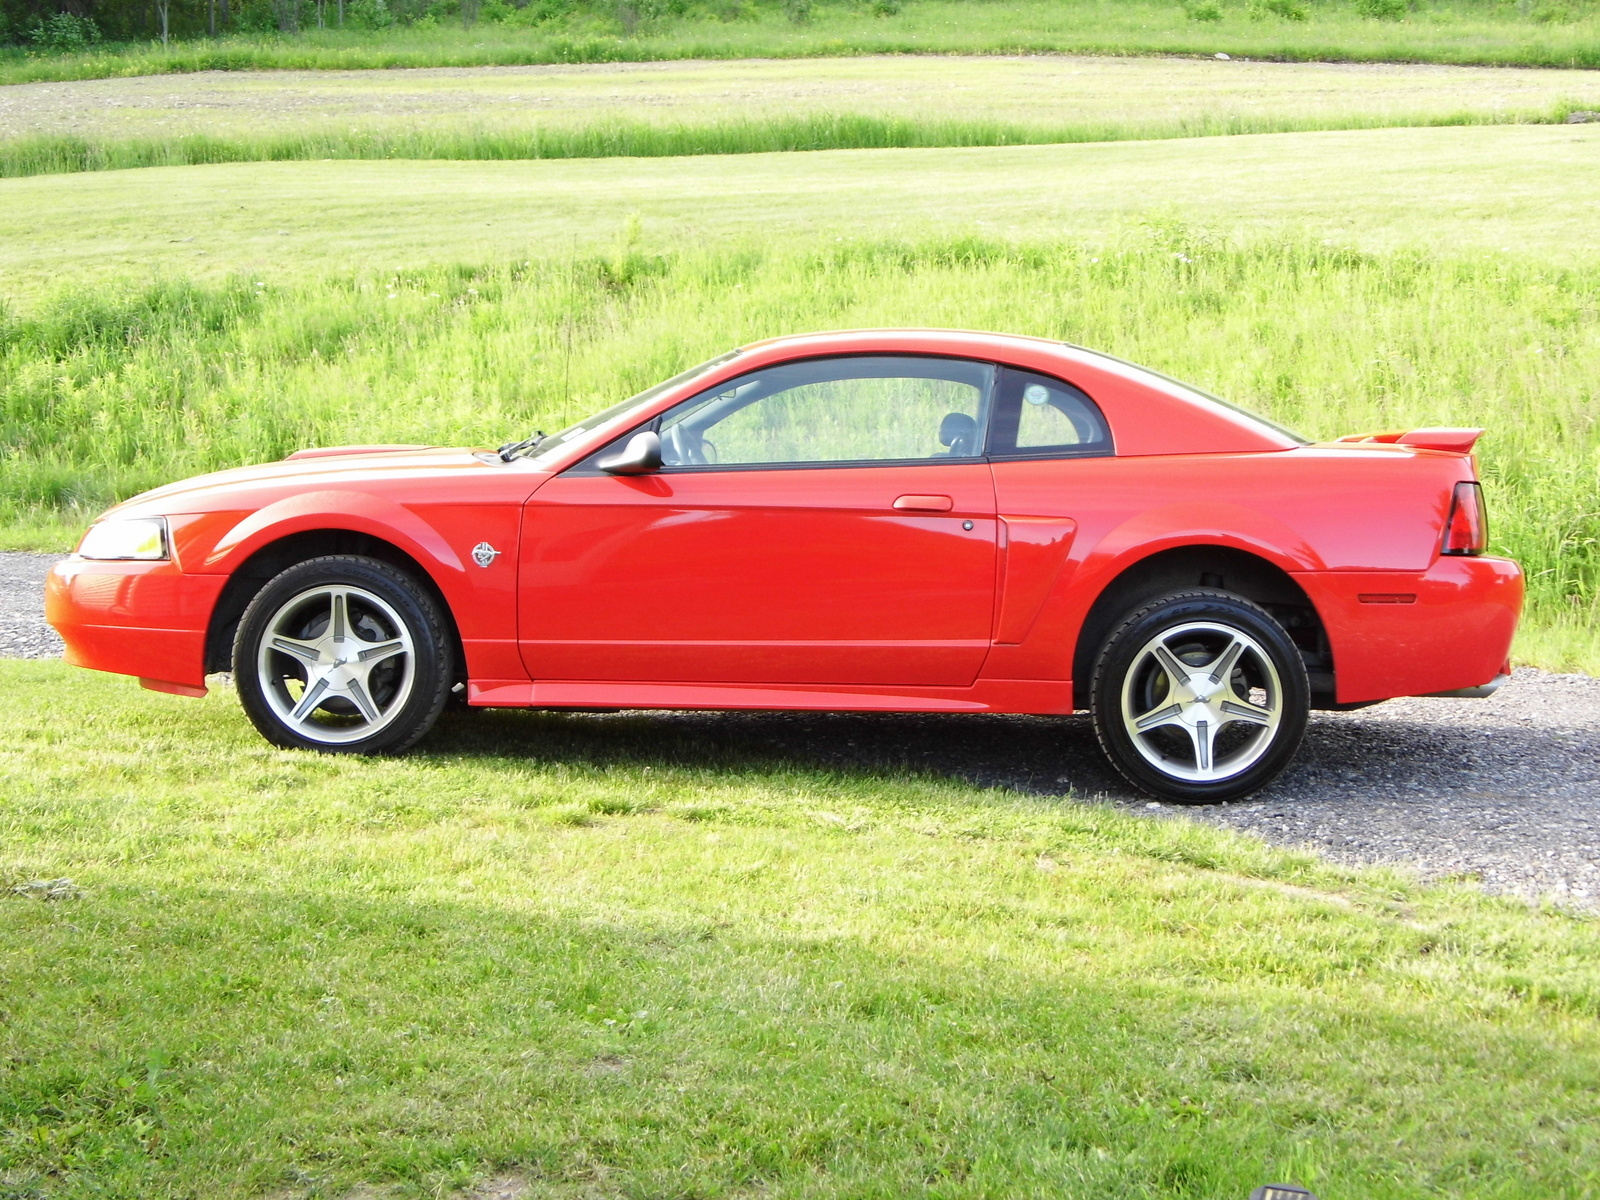 1999 ford mustang gt coupe picture exterior. Black Bedroom Furniture Sets. Home Design Ideas